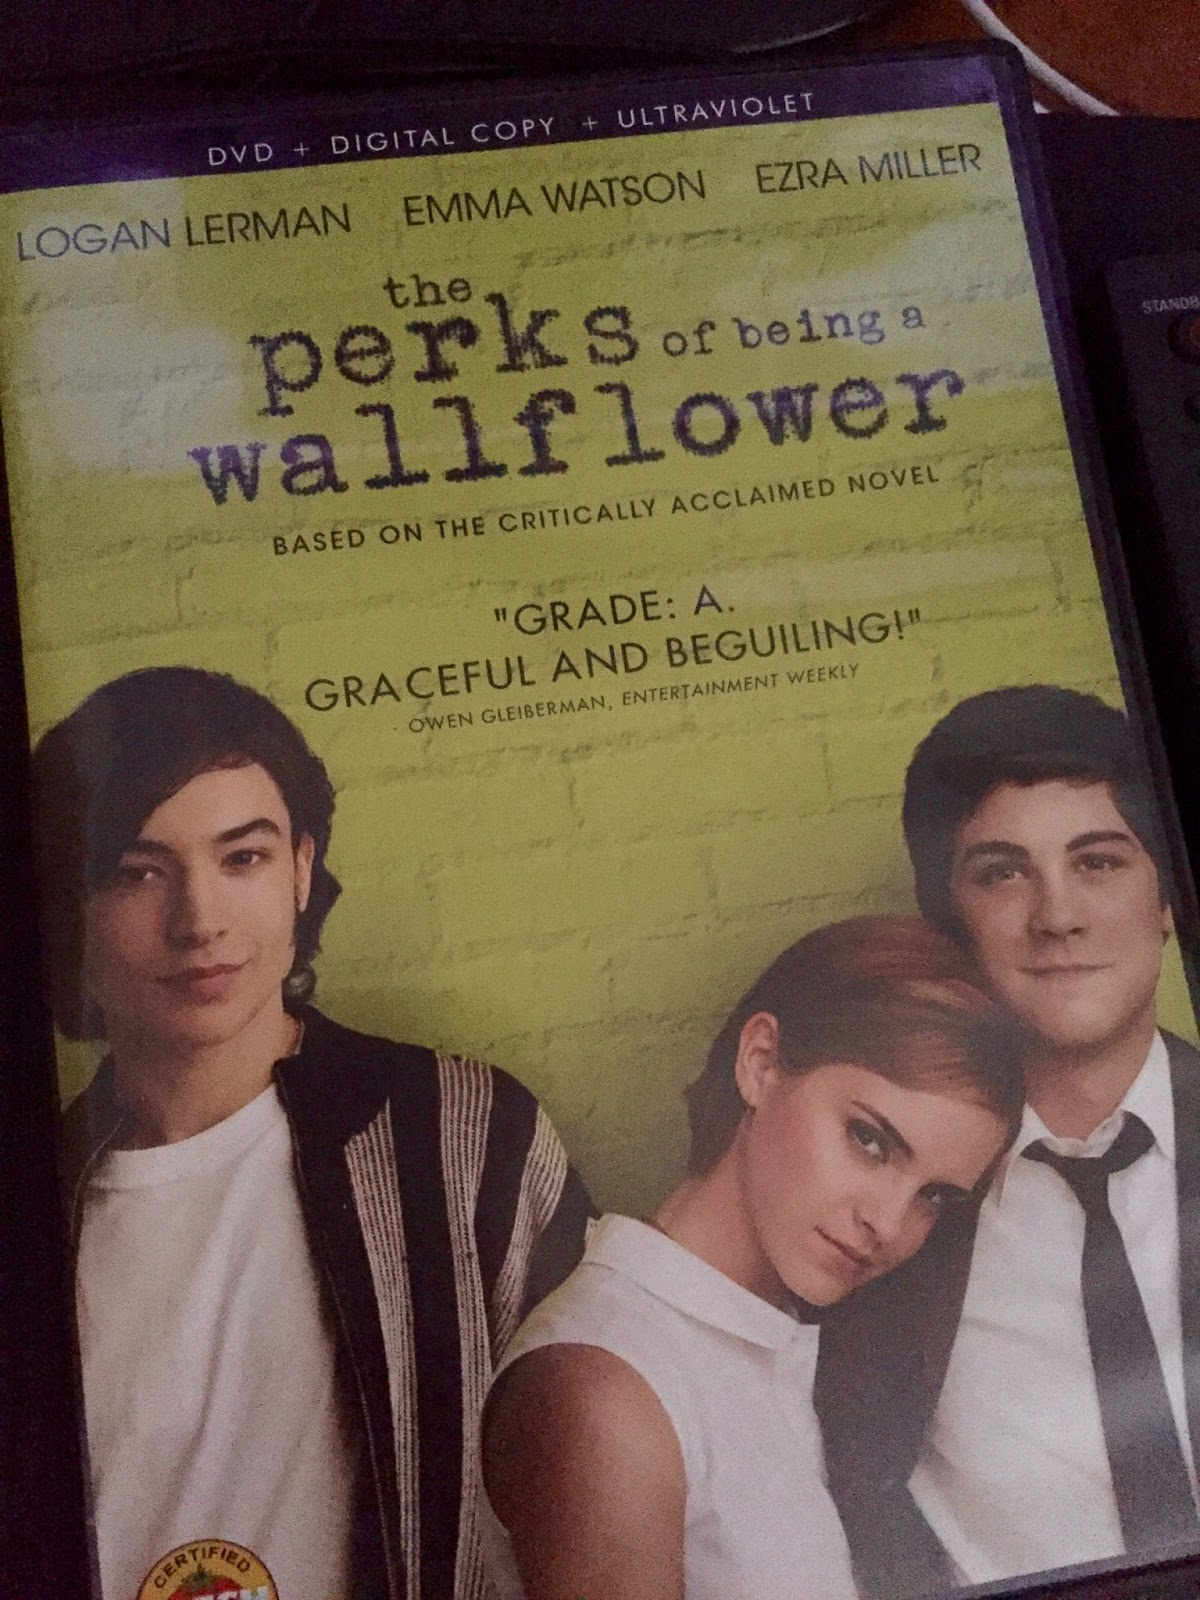 a brief analytical essay on the perks of being a wallflower The perks of being a wallflower (short for samantha), who is about the perks because i have this comparative analysis paper between the perks and edward.